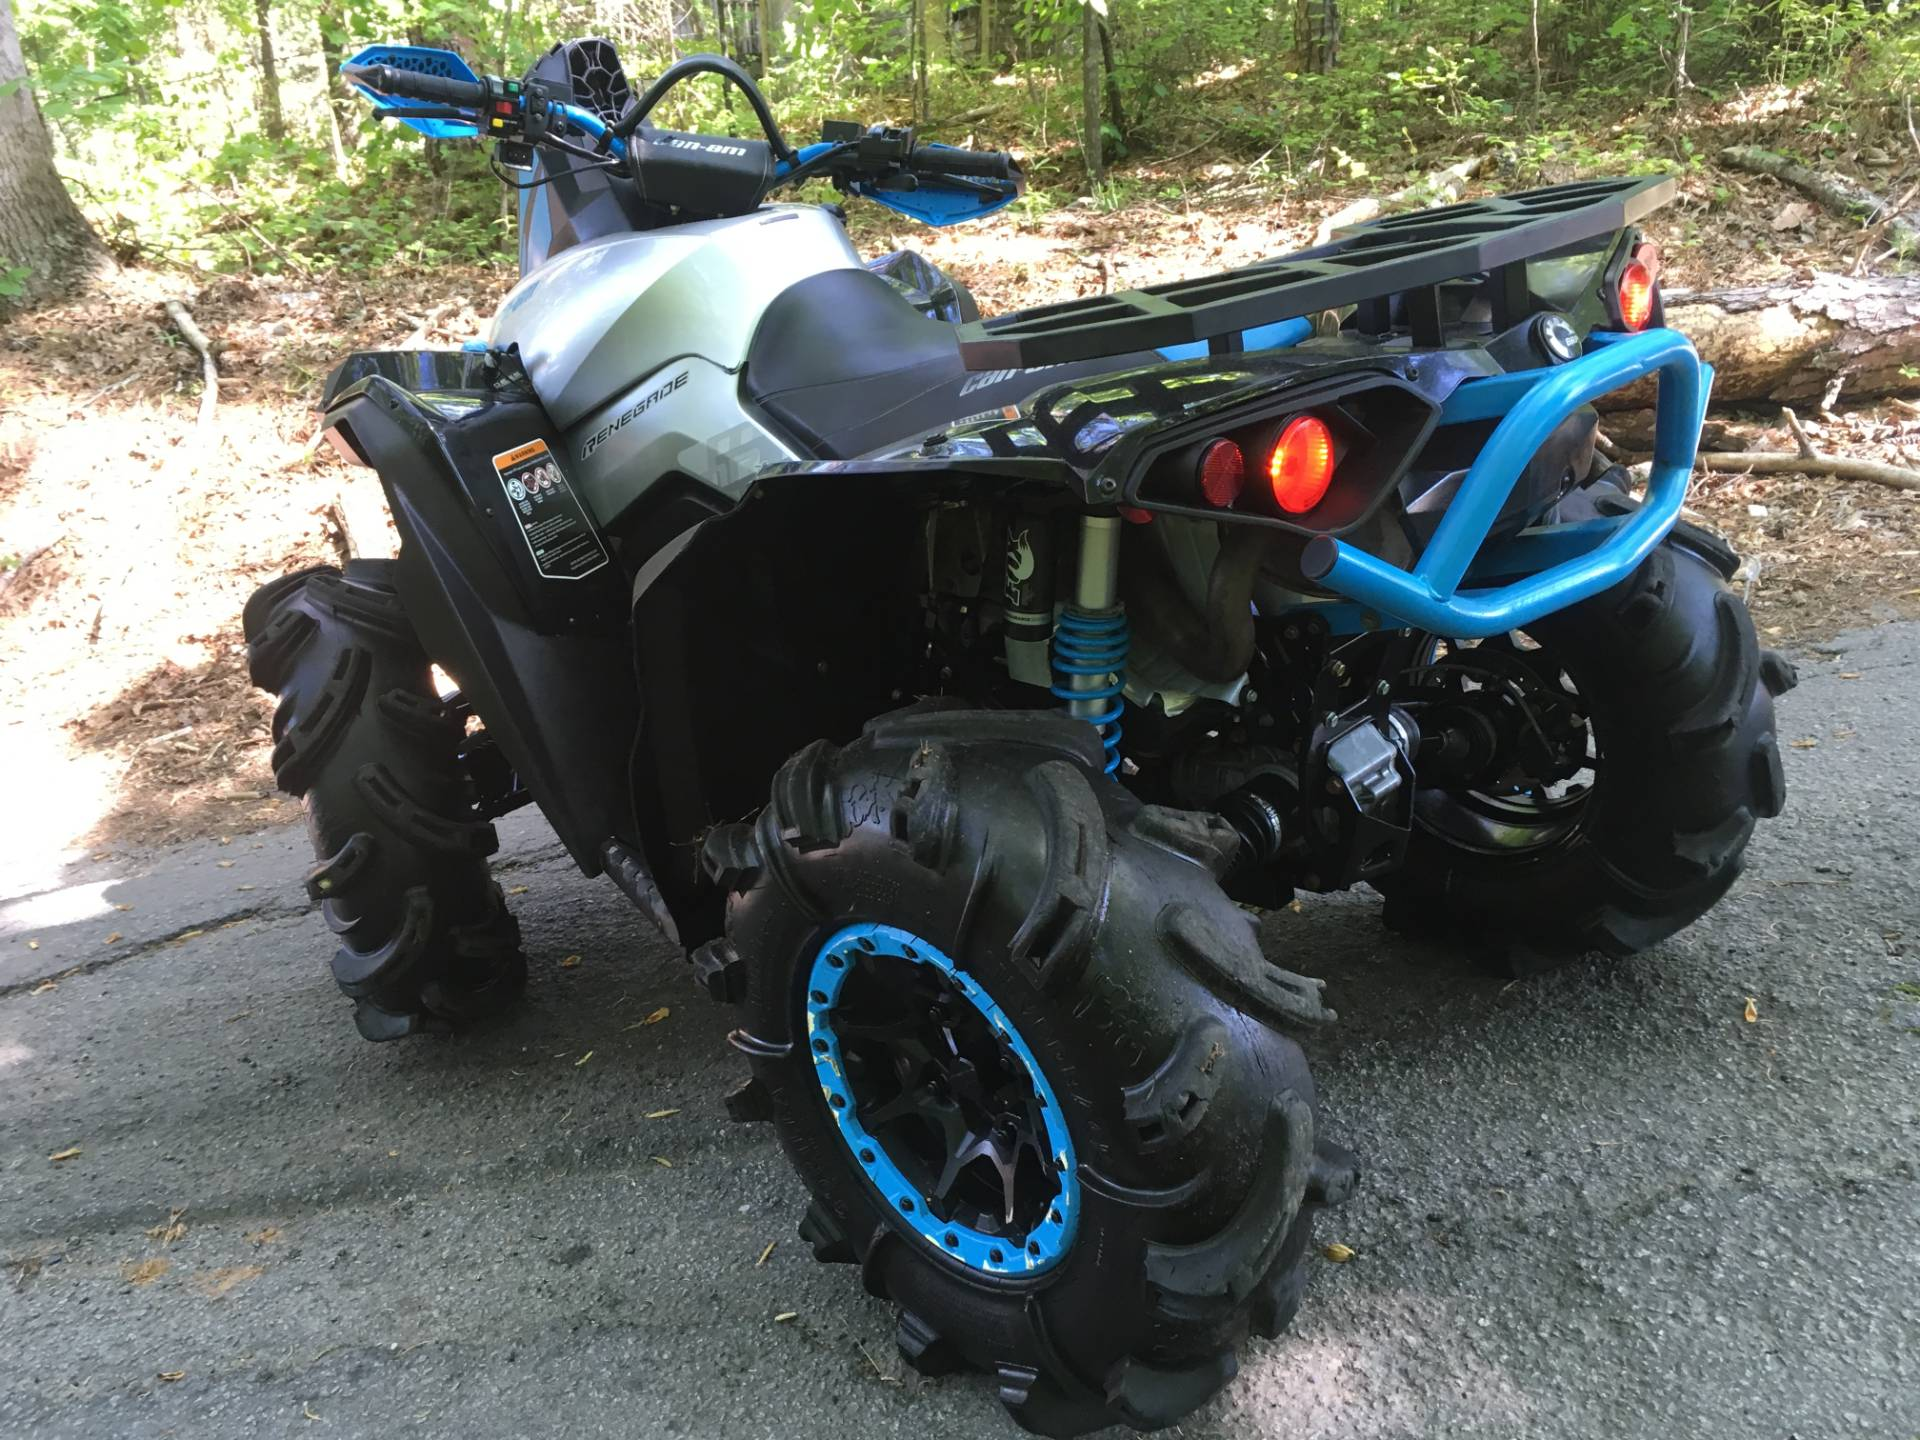 2017 Can-Am Renegade X mr 1000R in Woodstock, Georgia - Photo 3